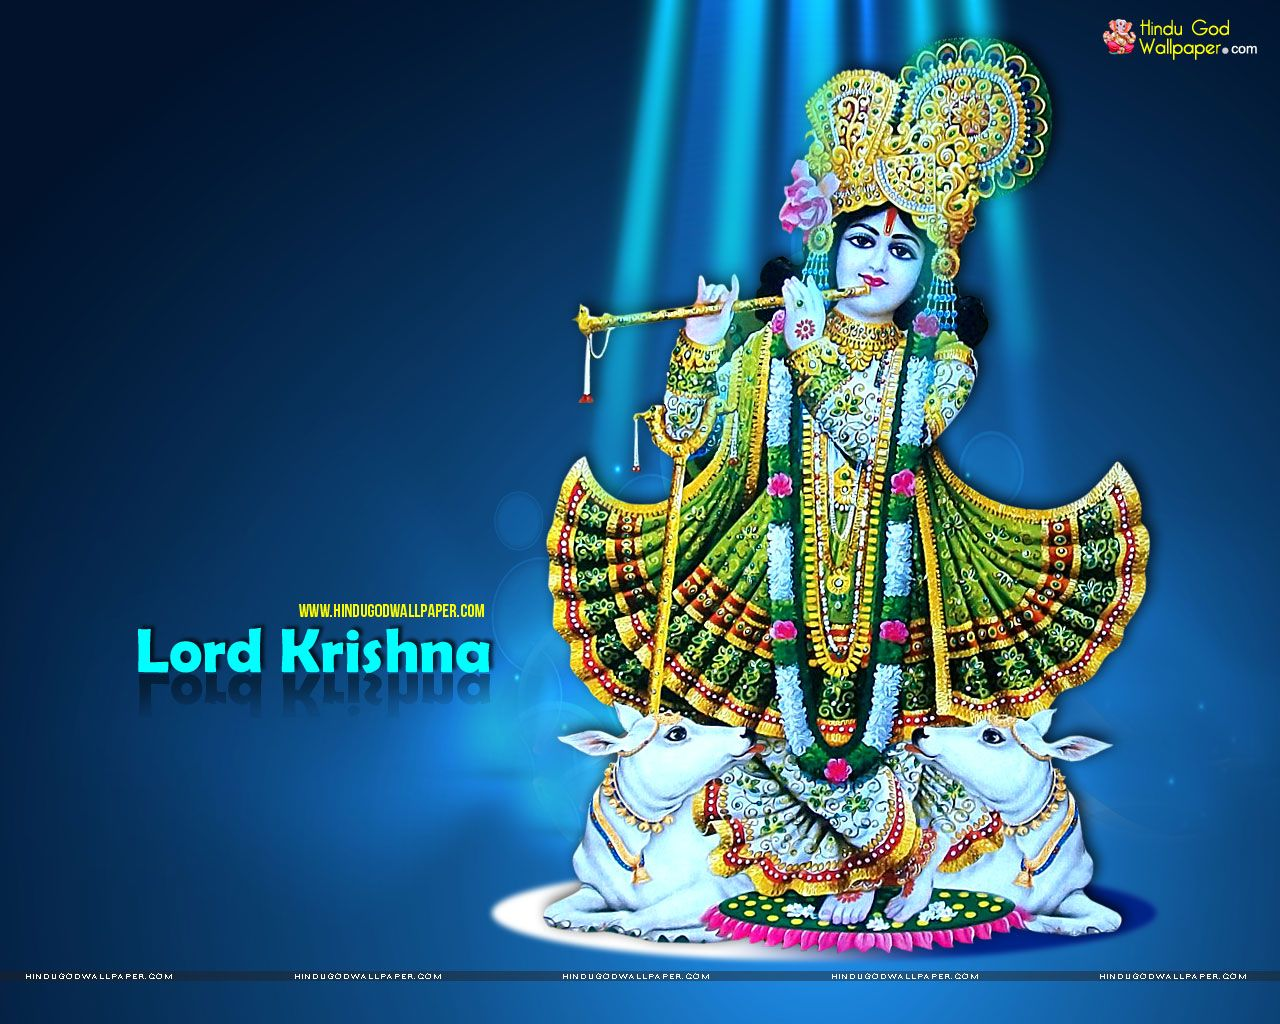 Hd wallpaper lord krishna - Lord Krishna High Resolution Wallpapers Images Download